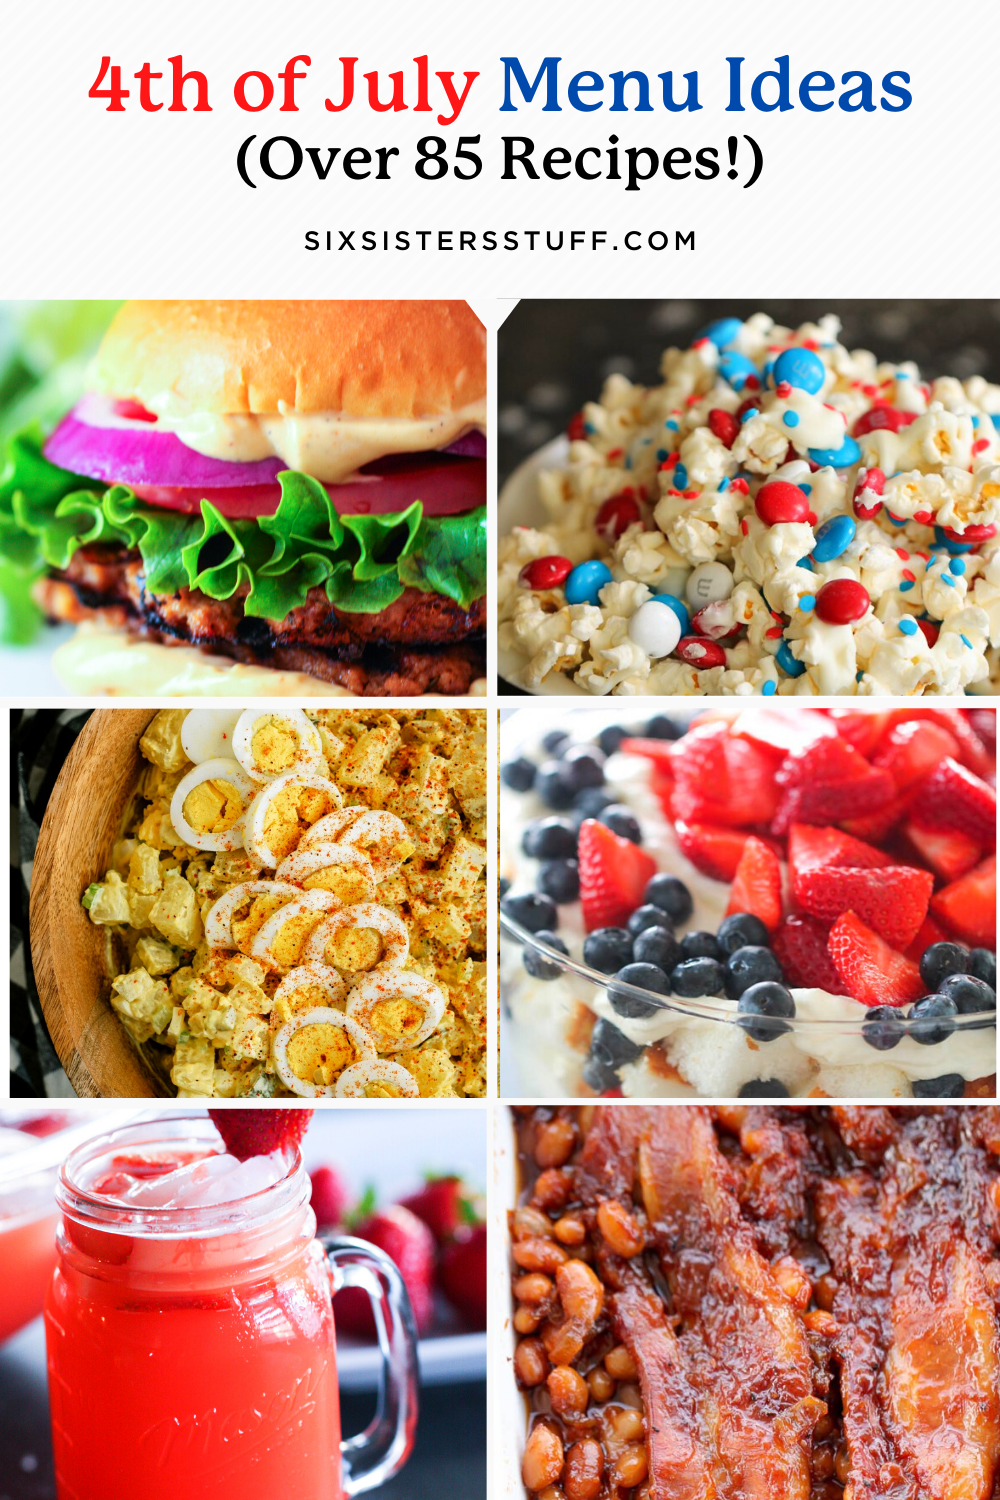 4th Of July Menu Ideas (Dinners, Side Dishes, Desserts, and Drink Recipes)